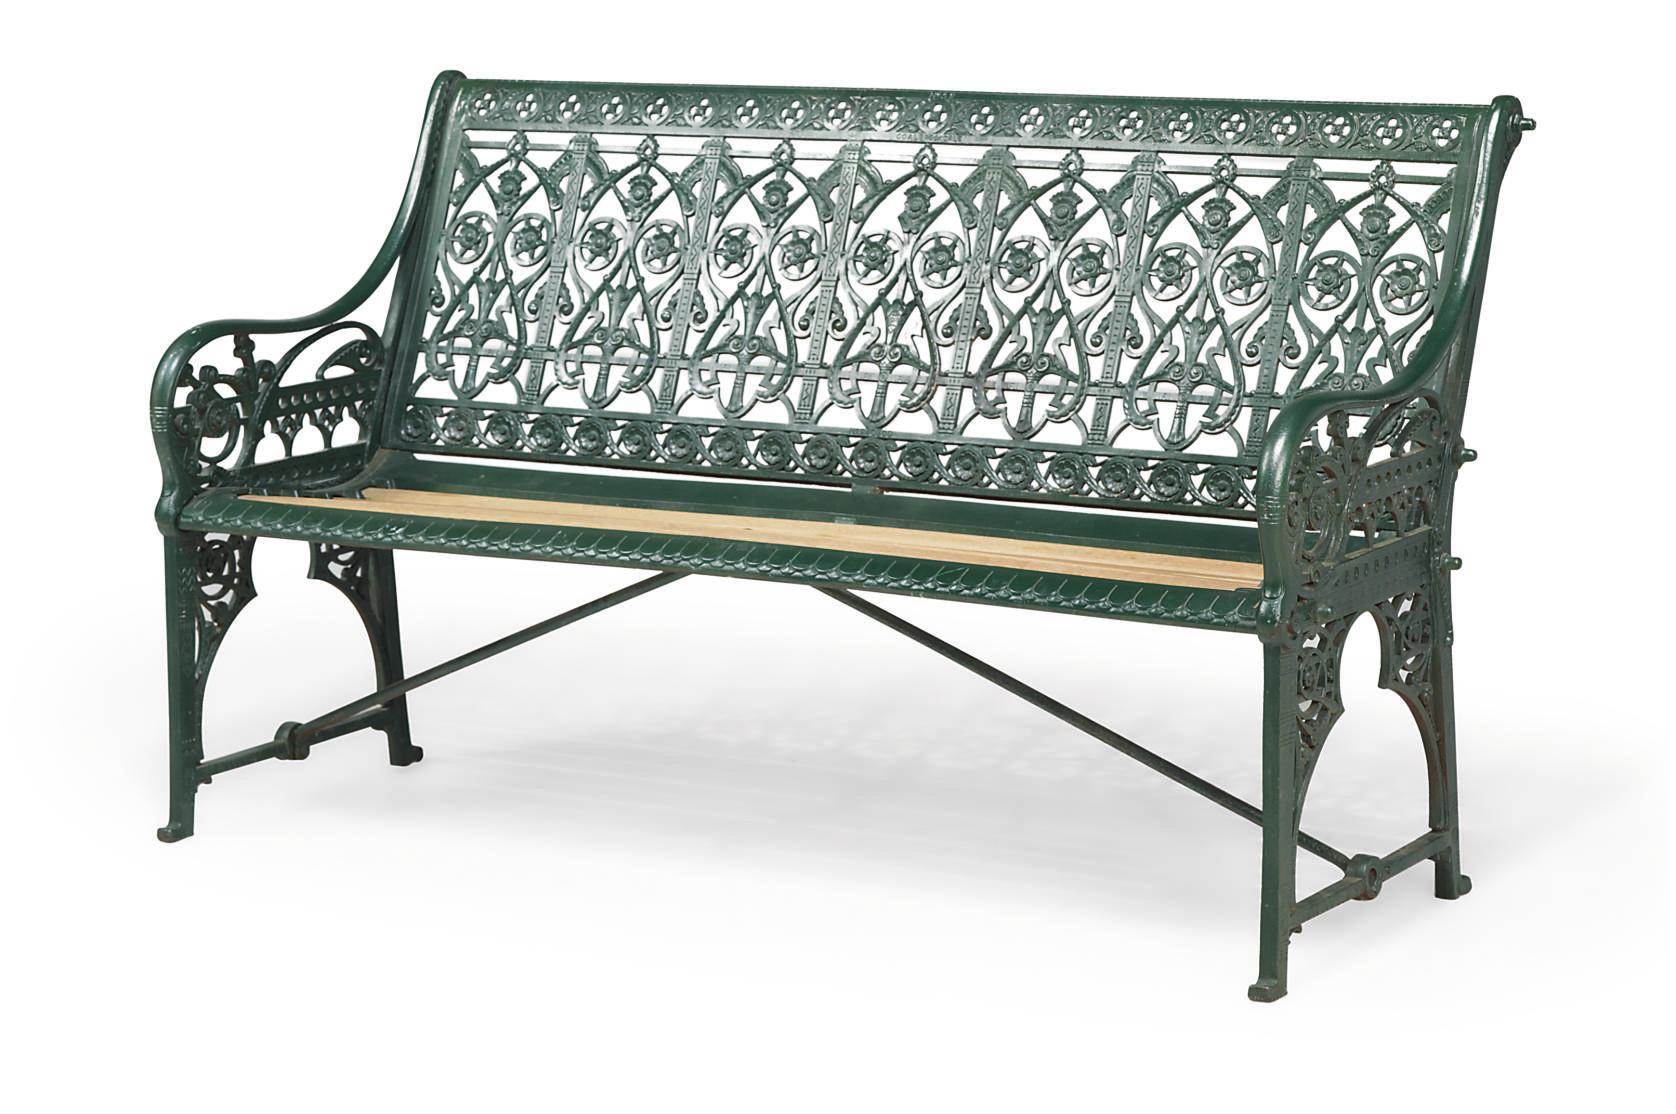 Admirable A Victorian Cast Iron Medieval Pattern Garden Seat By Machost Co Dining Chair Design Ideas Machostcouk